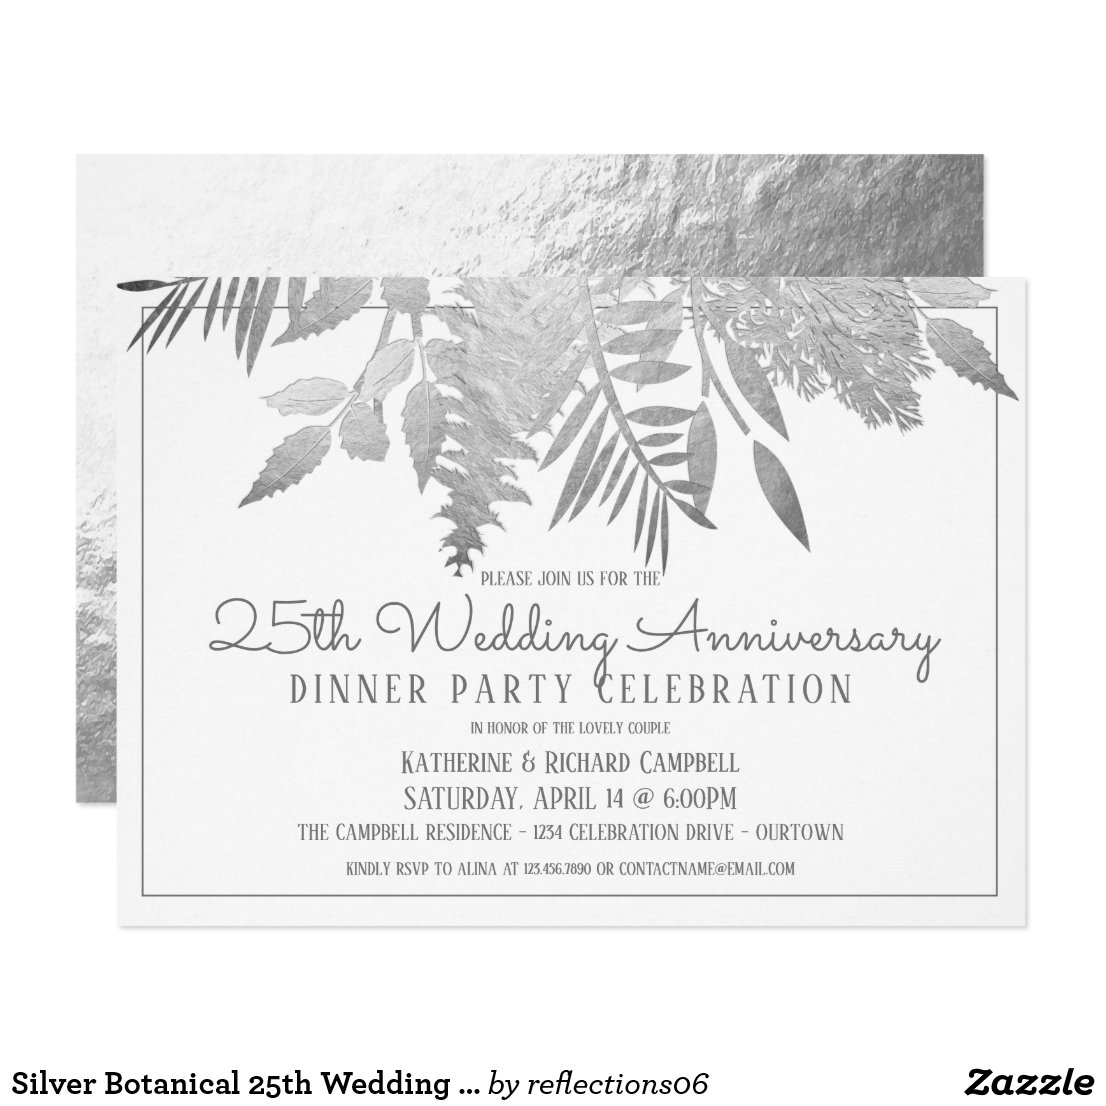 Silver Botanical 25th Wedding Anniversary Party Invitation